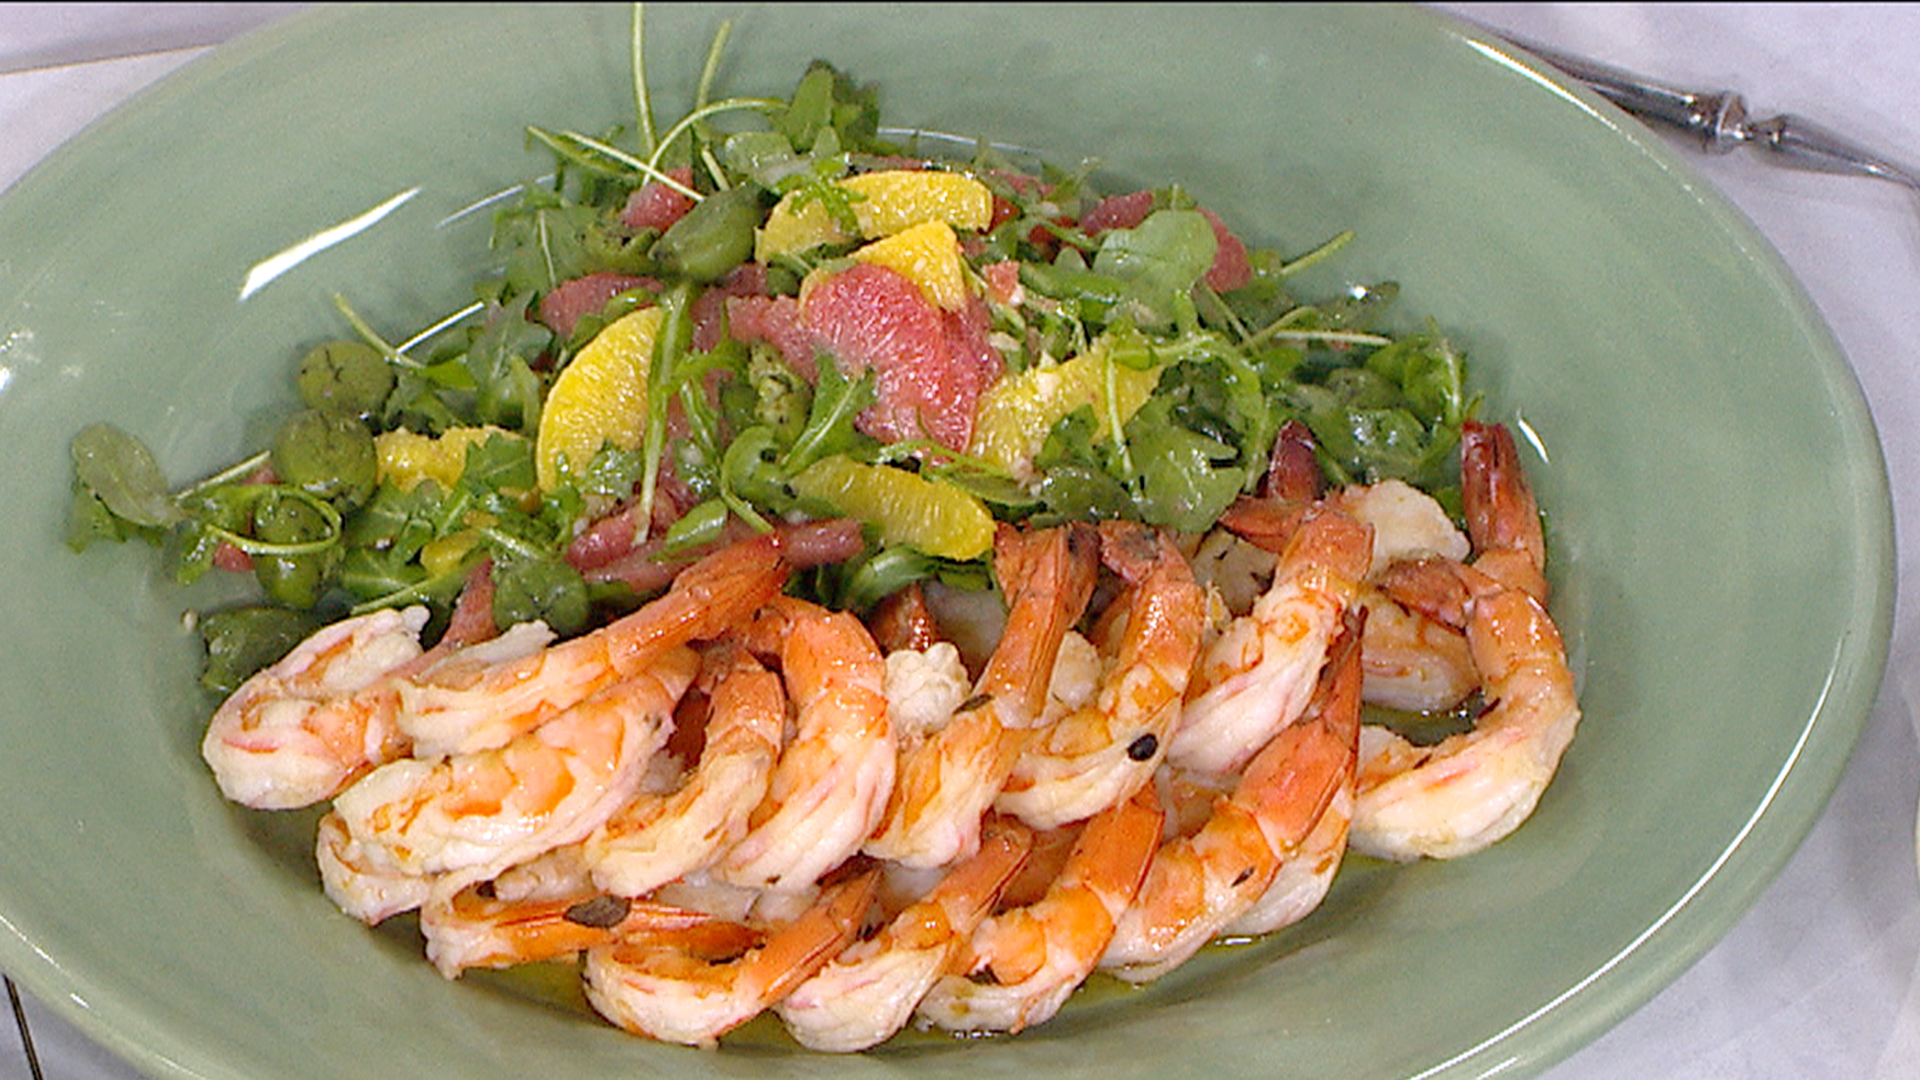 Shrimp And Cucumber Salad With Horseradish Mayo Recipe ...